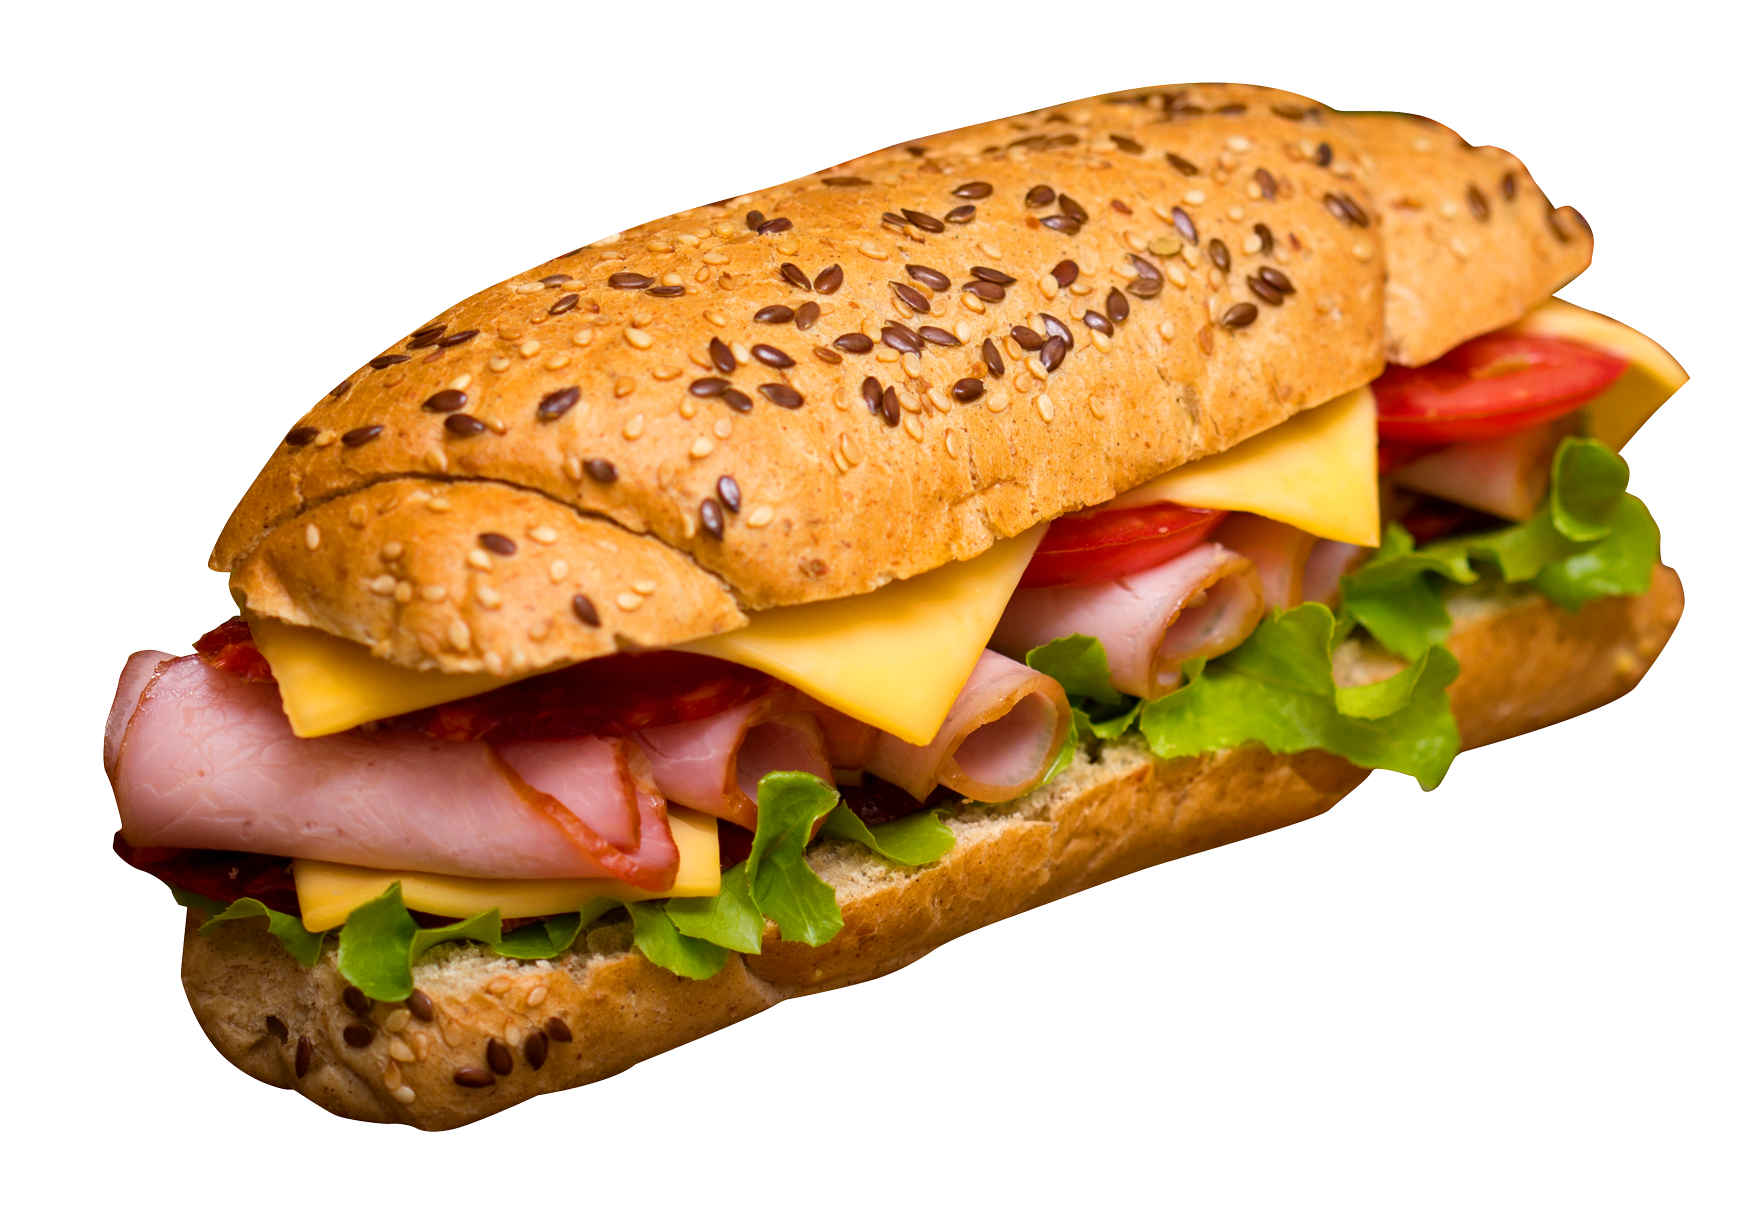 Sandwich PNG Transparent Image.